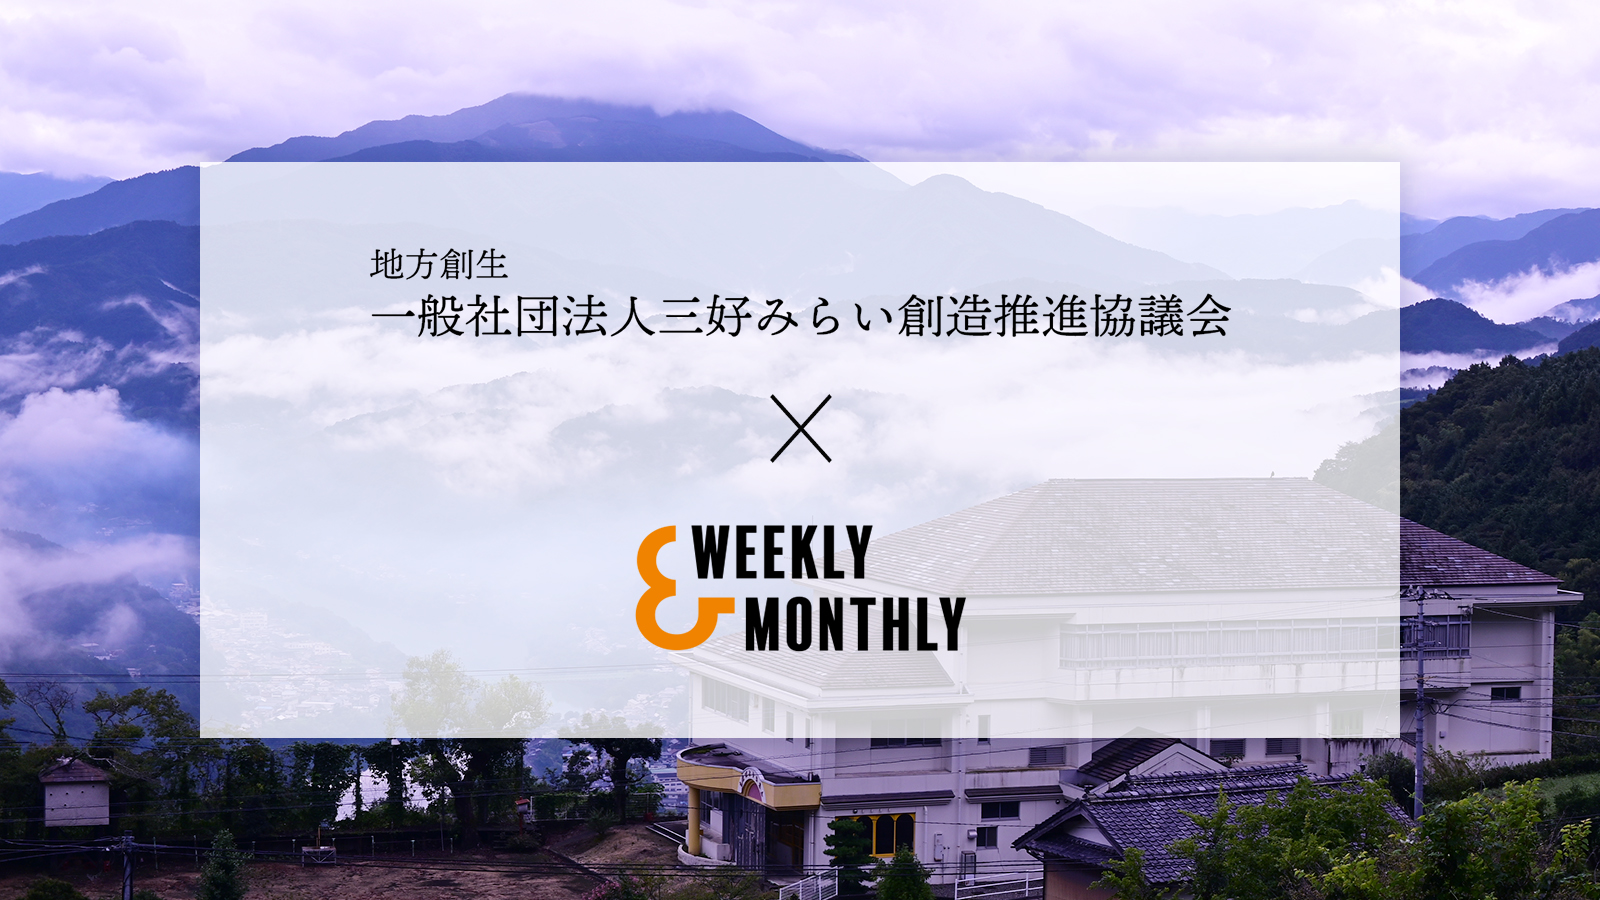 【PR】Weekly&Monthly株式会社、一般社団法人 三好みらい創造推進協議会と業務提携開始!徳島県 三好市のテレワーク・移住促進プロモーションを強化へ